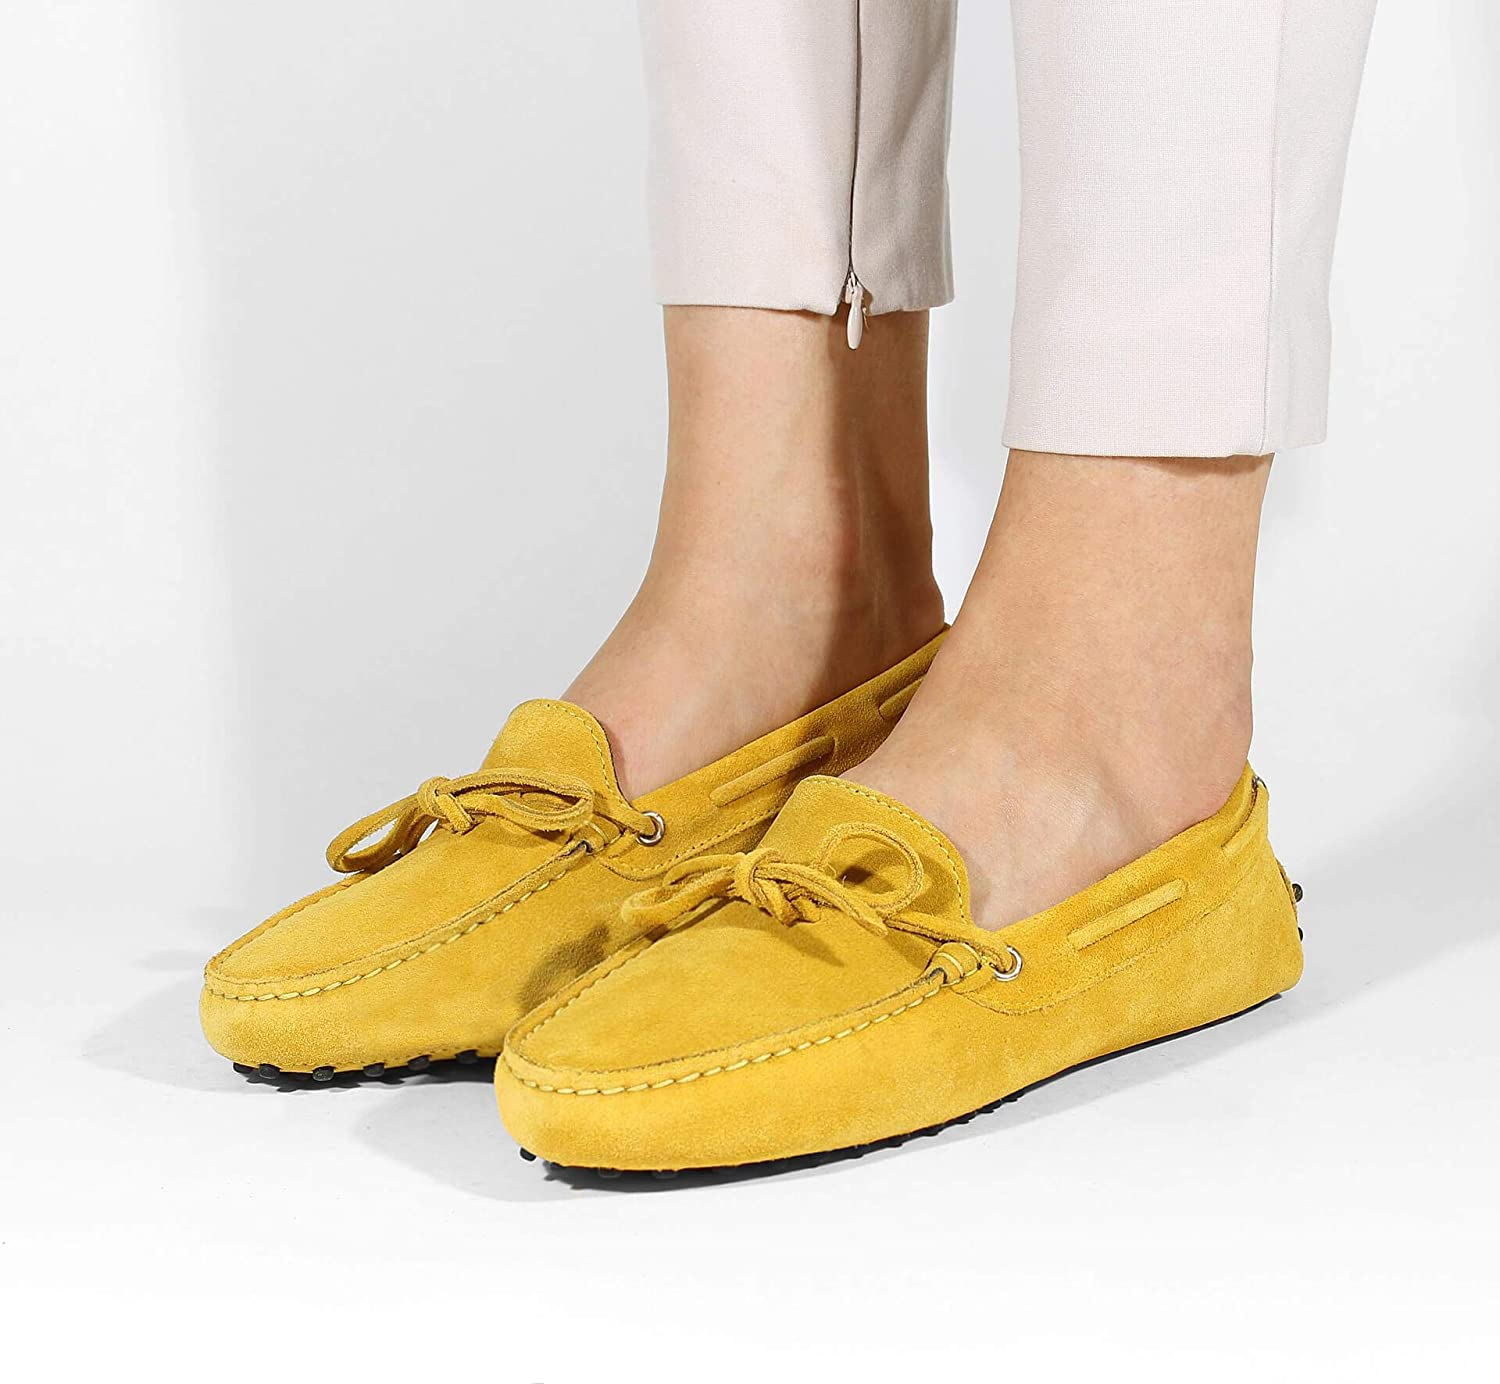 Aurélien Suede Leather Driving Shoes | Women's Moccasins | Suede Leather Flat Loafer Ladies Shoes Yellow